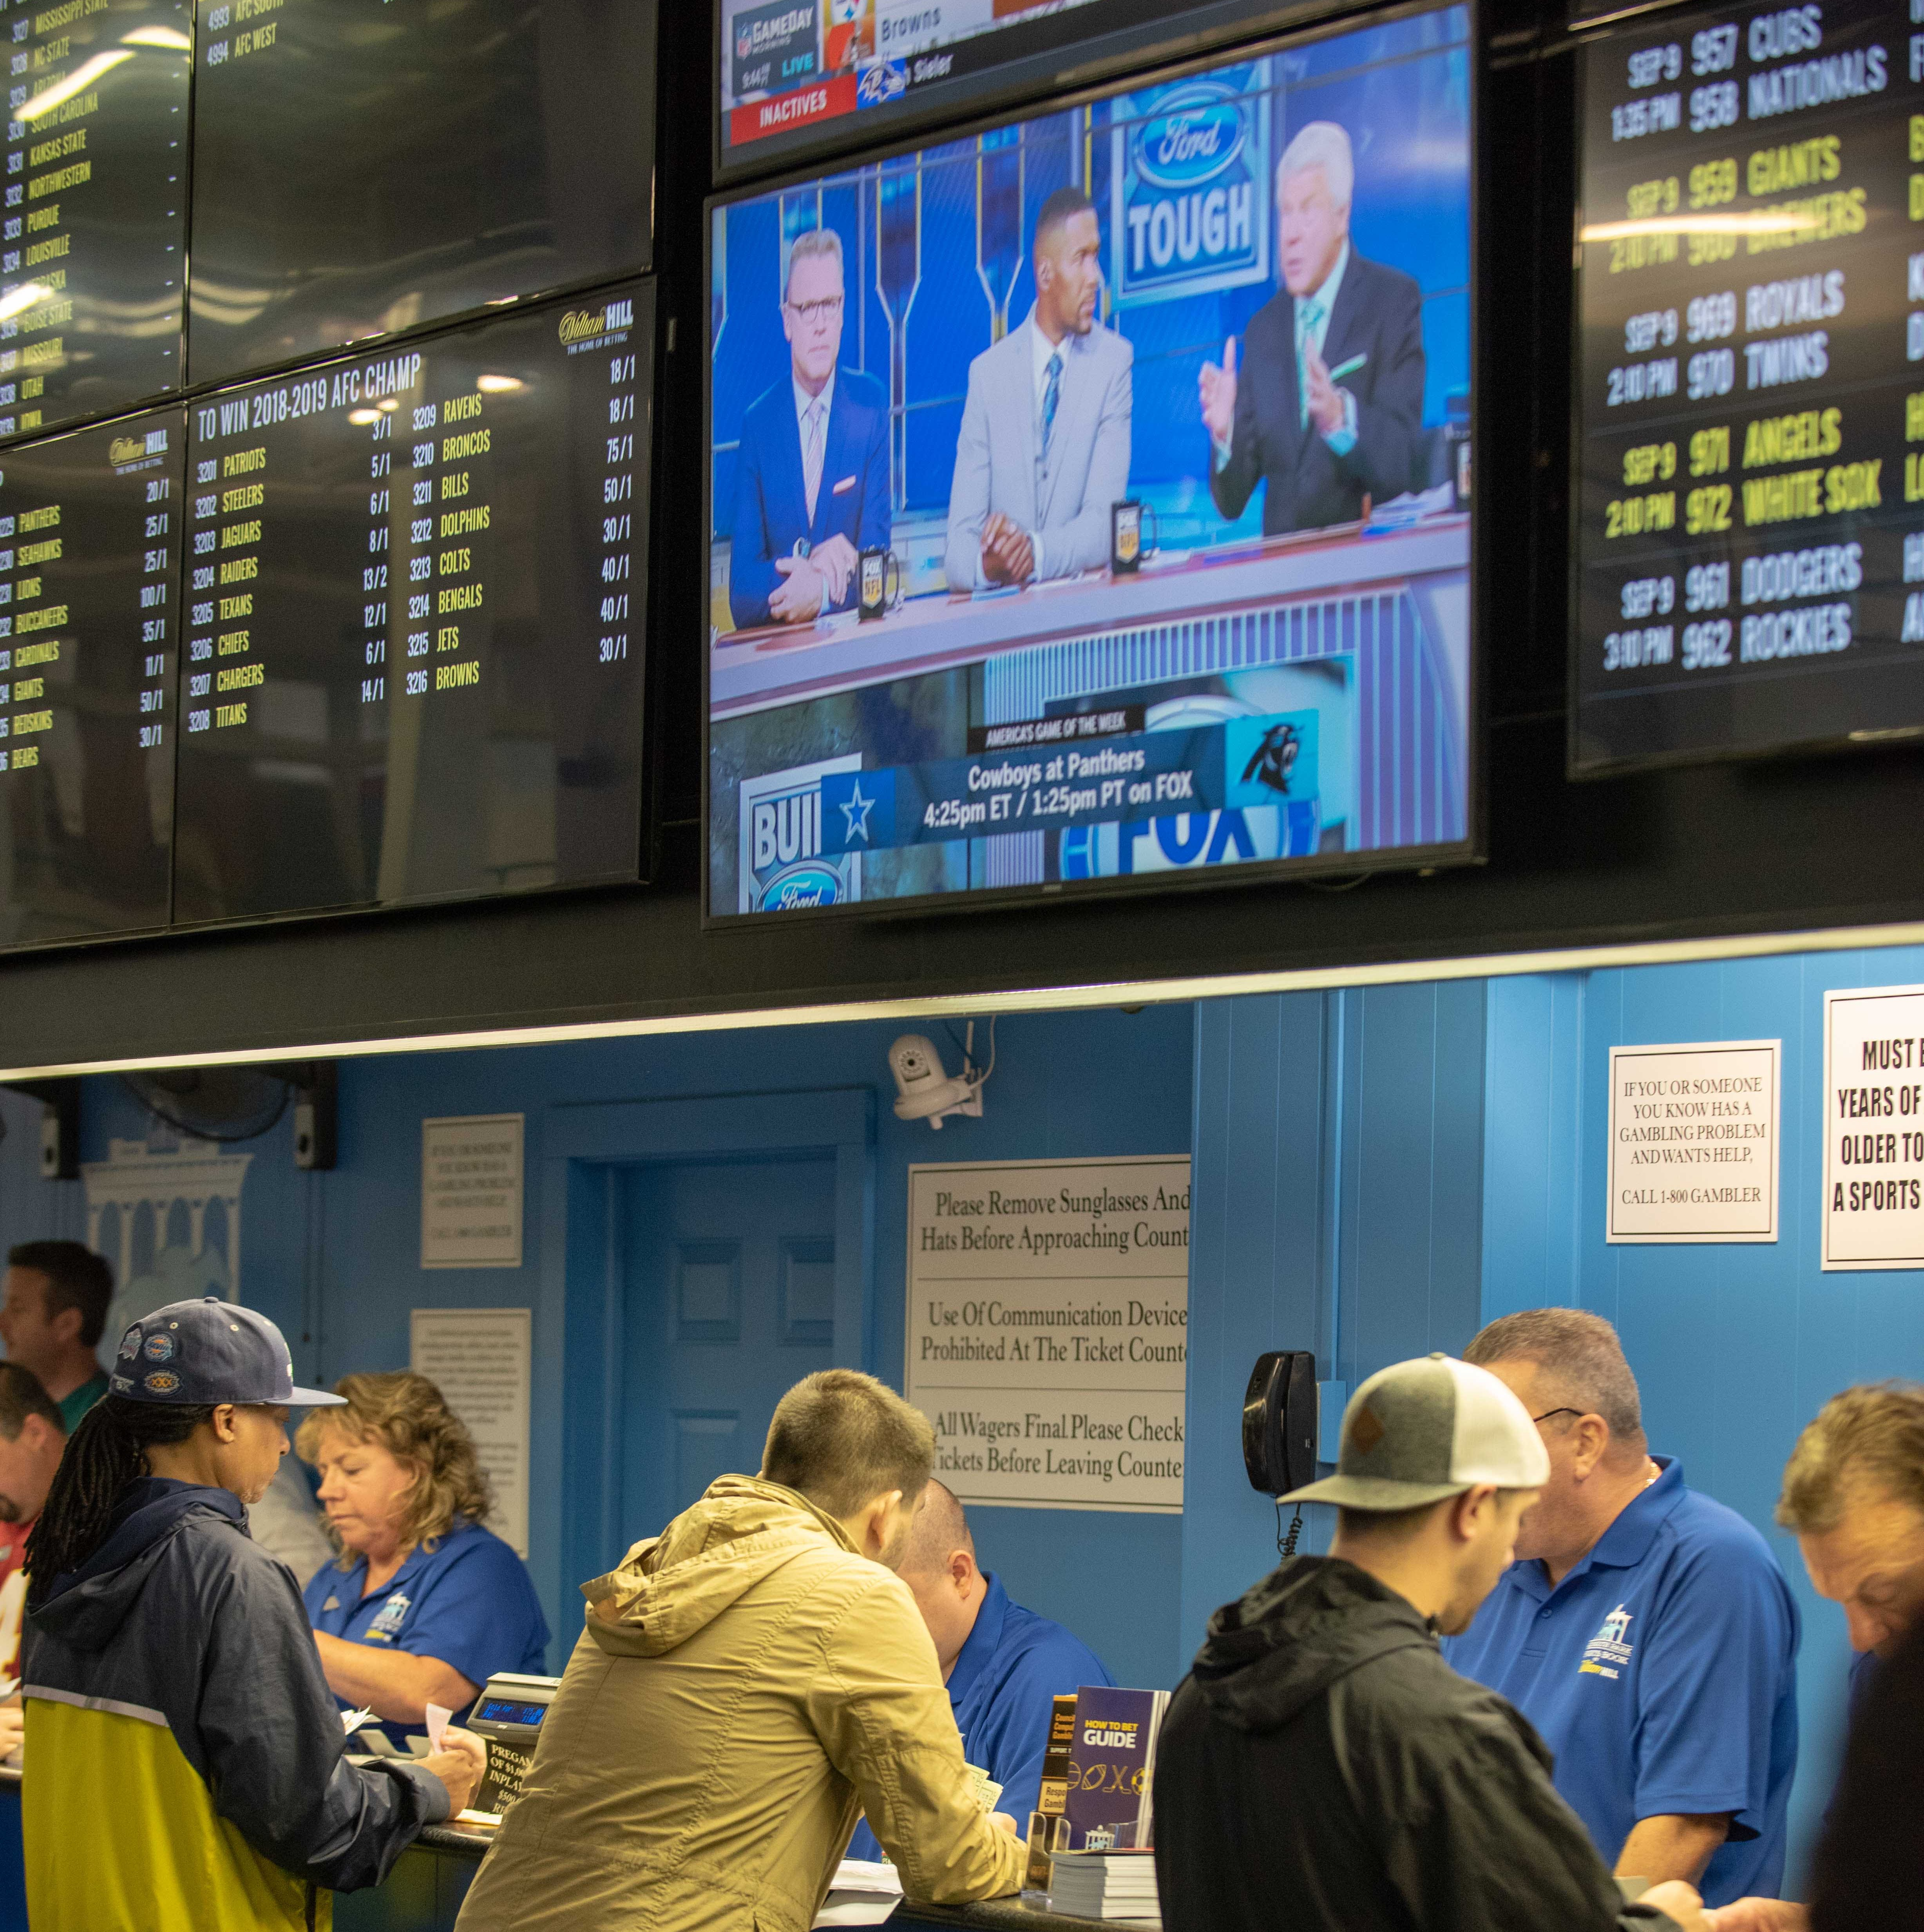 NJ sports betting: Monmouth Park lost $502K at sports book last month